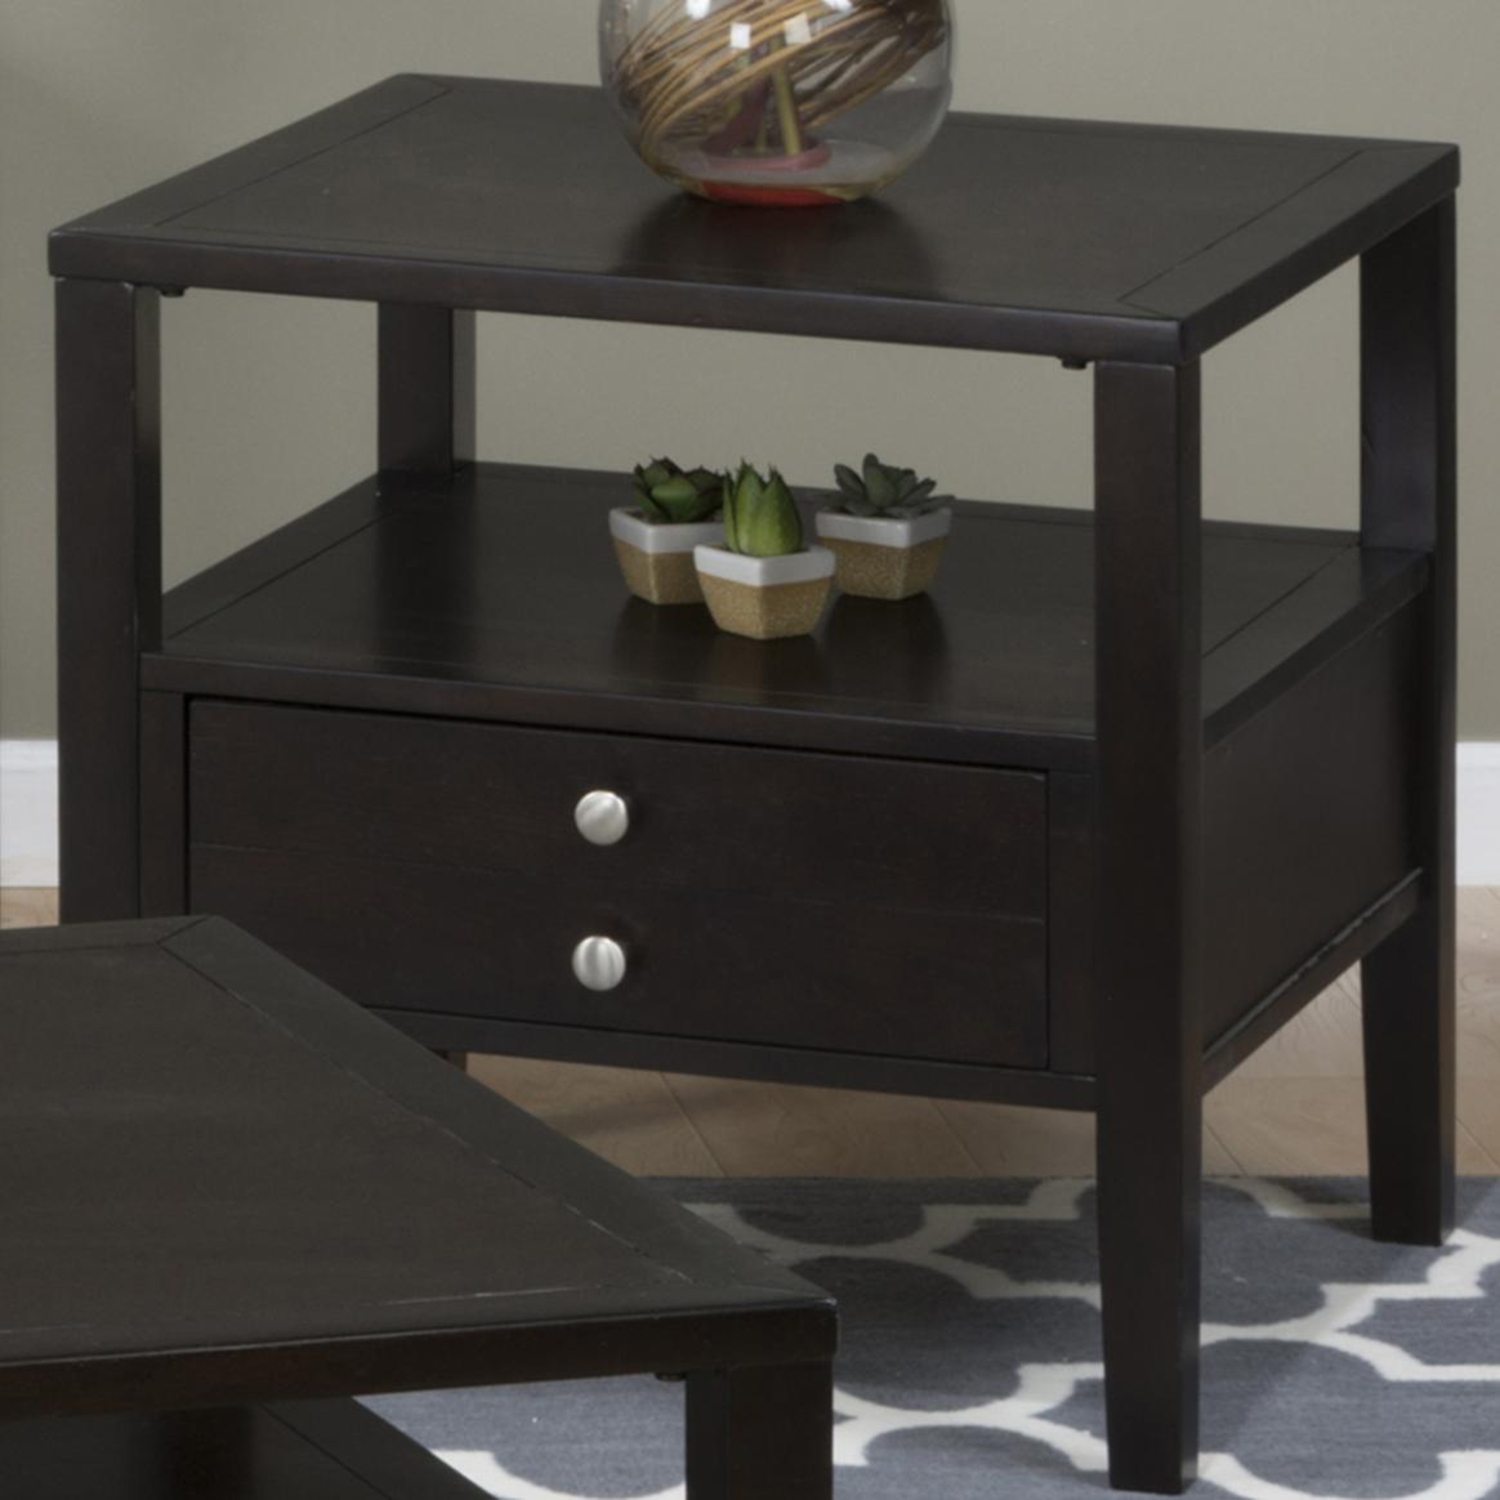 Hamilton End Table - Espresso - JOFR-975-3